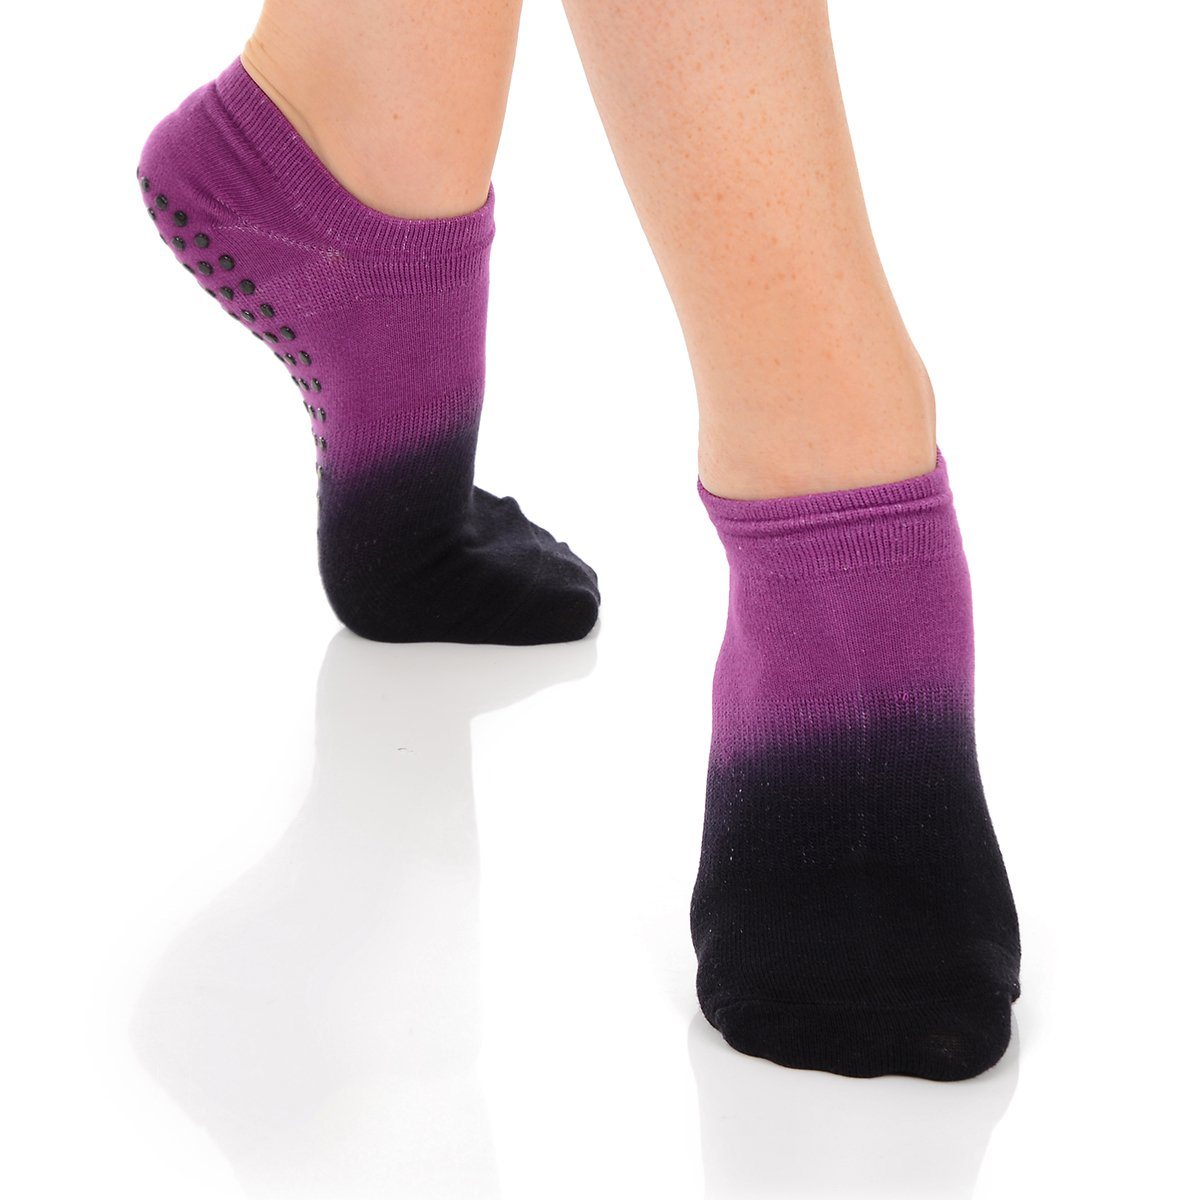 Great Soles Ombre Dyed Grip Socks for Women - Non Slip Yoga Socks for Pilates, Barre, Ballet (Berry/Black)